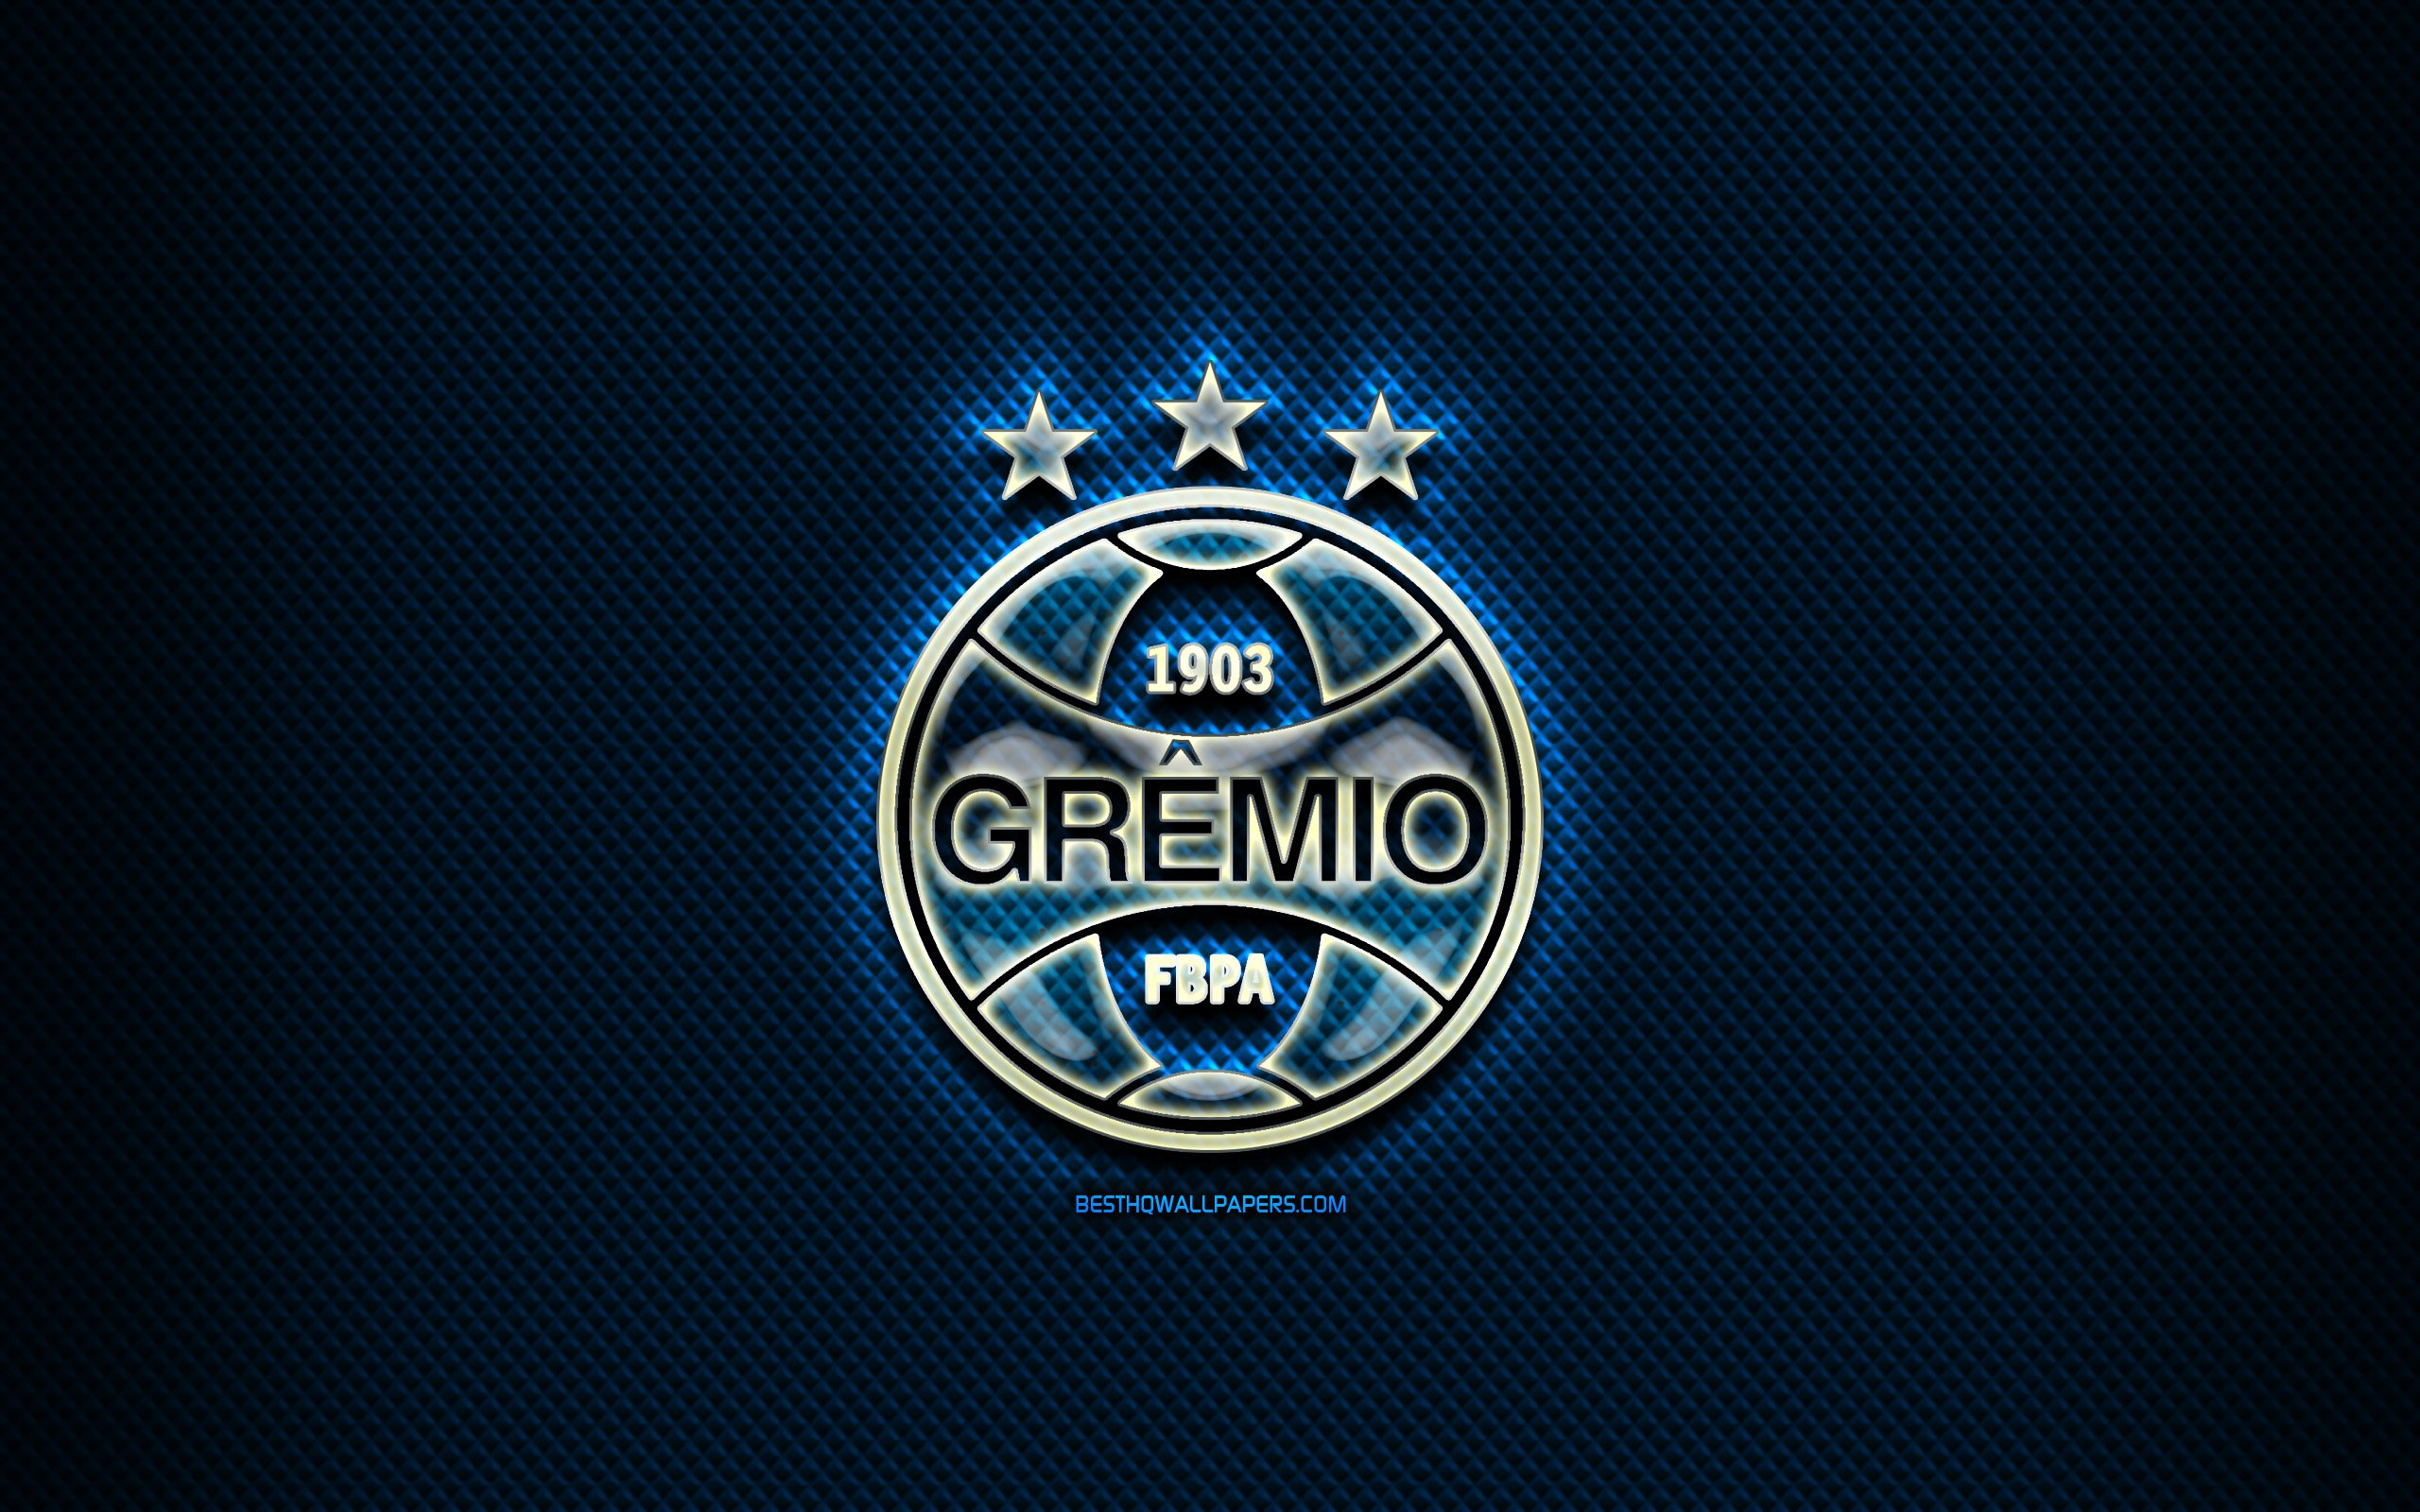 Download wallpapers Gremio FC glass logo blue rhombic background 2560x1600